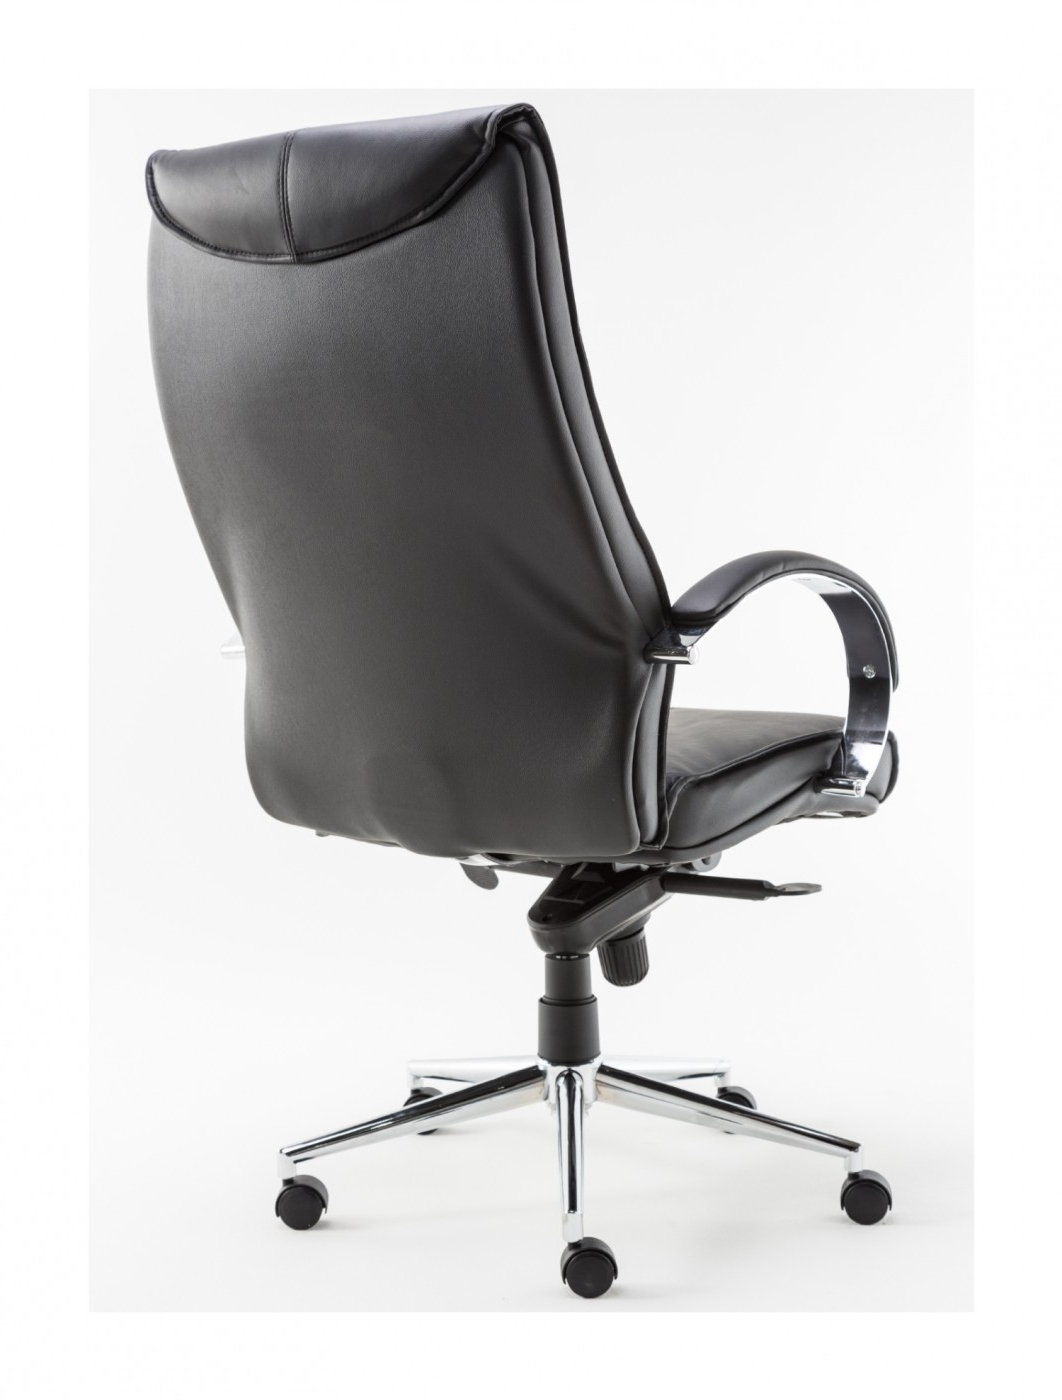 Verona Executive Leather Office Chairs In Favorite Alphason Verona Executive Office Chair Aoc1019blk (View 10 of 20)